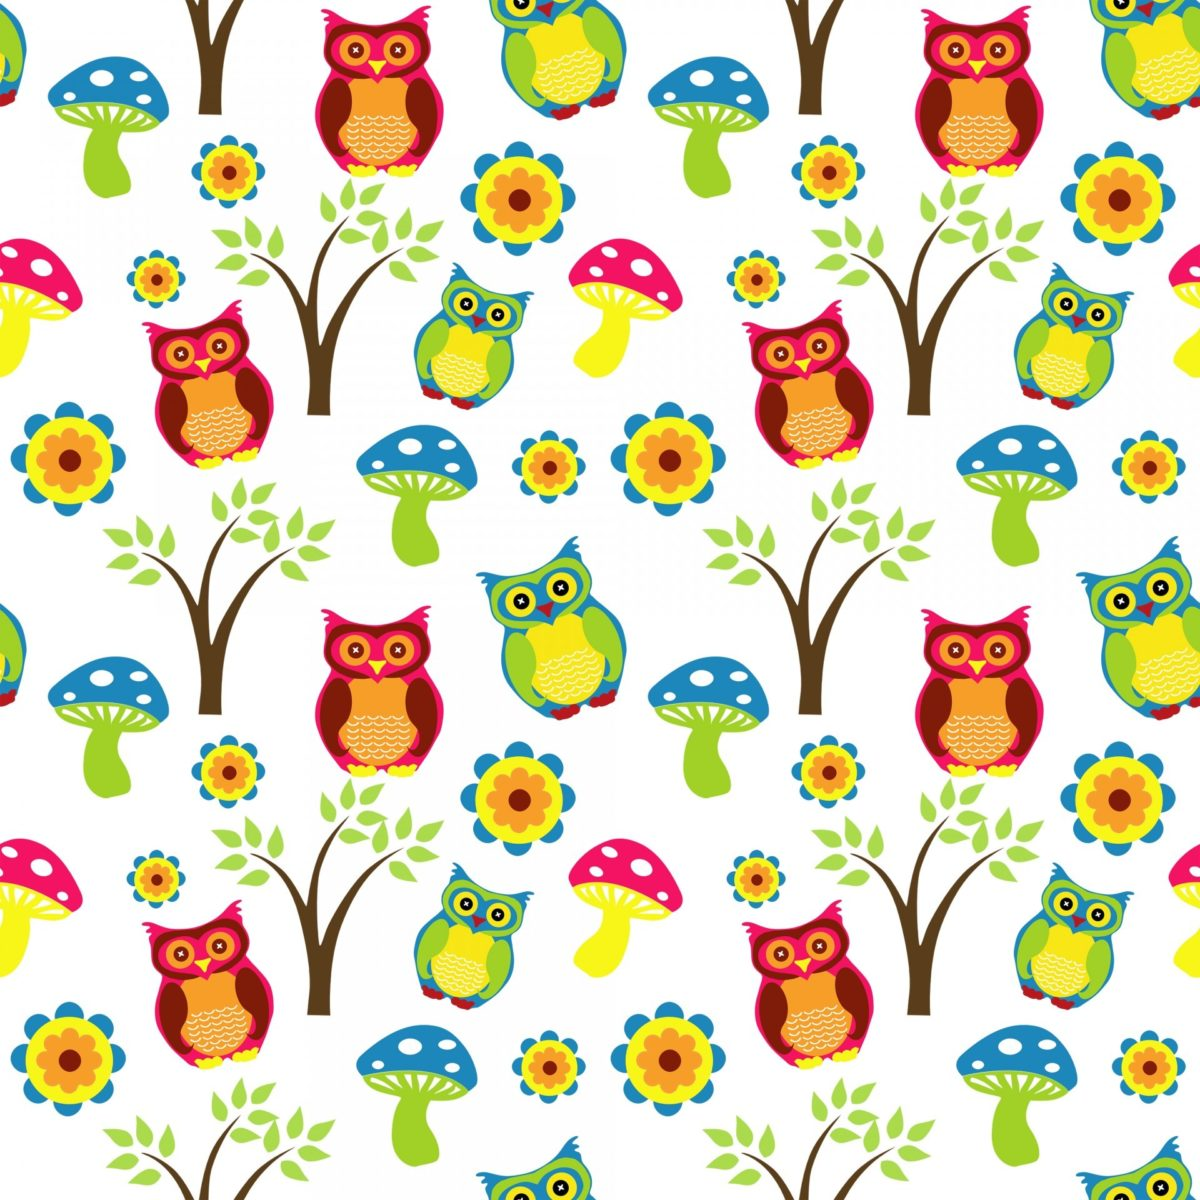 Cute Owl Wallpaper Pattern